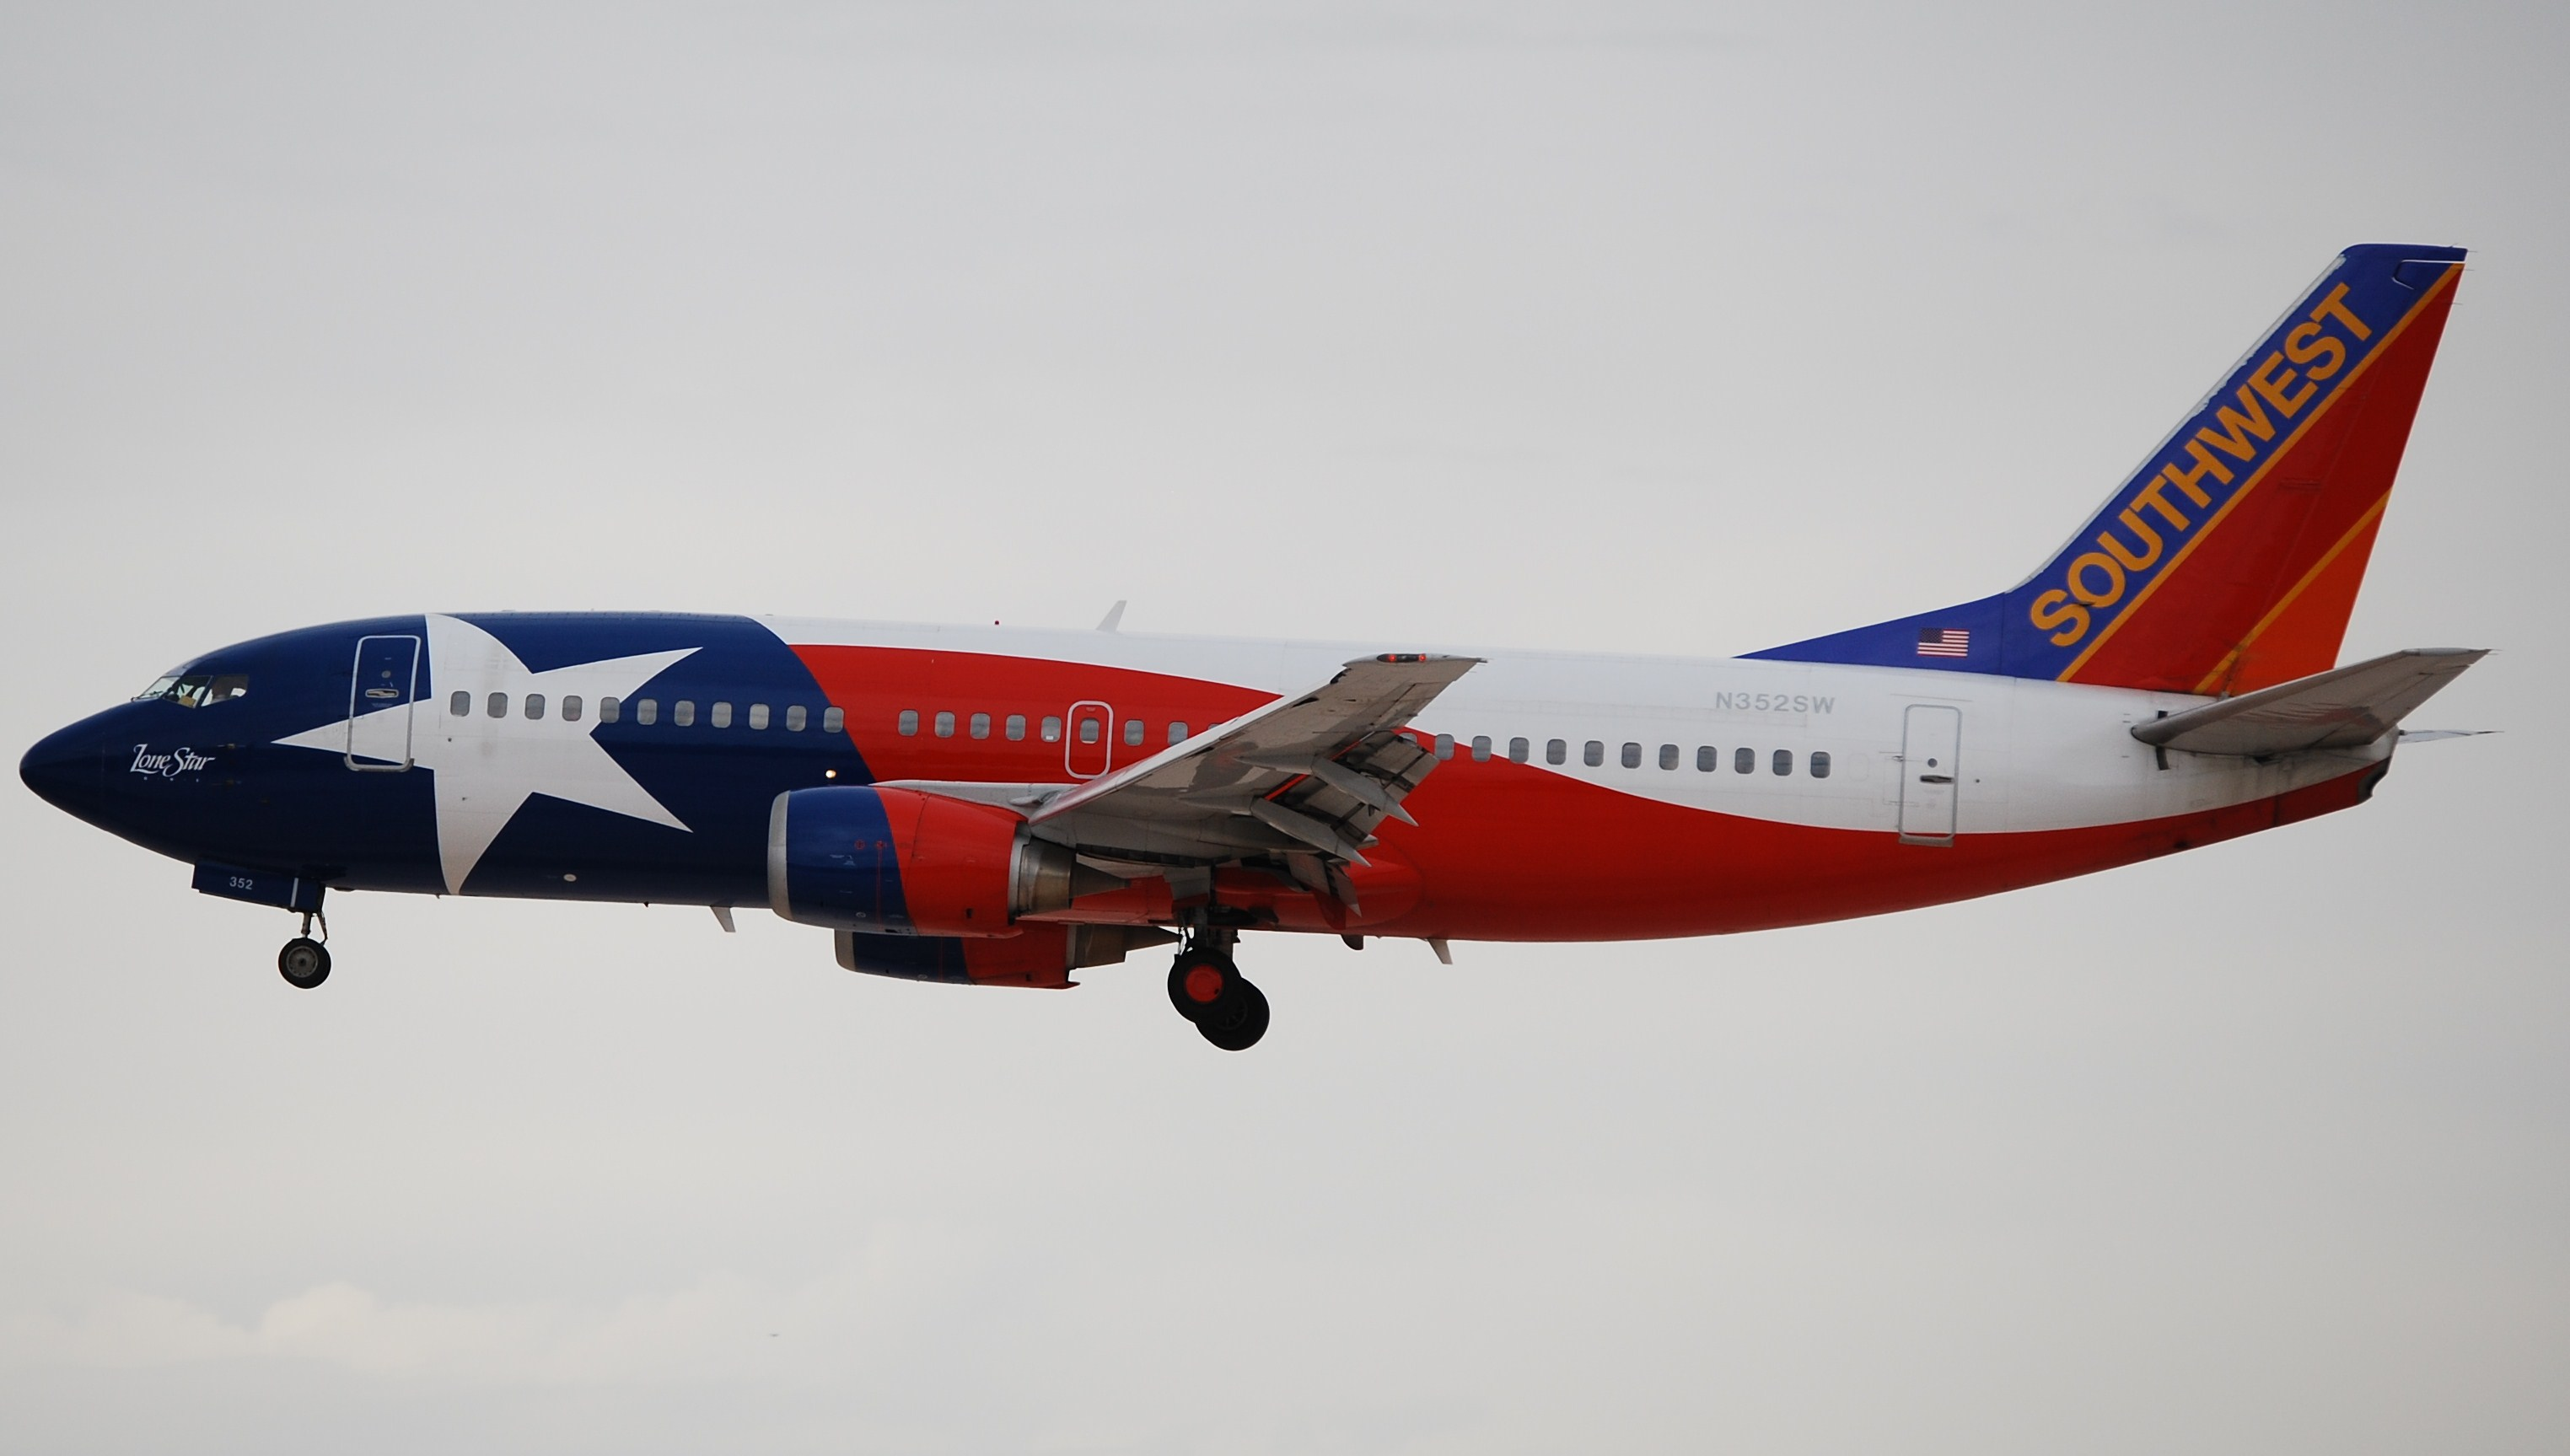 Star Of Texas >> File:Southwest Airlines, Boeing 737-300 (Texas Lone Star Livery), N352SW.jpg - Wikimedia Commons